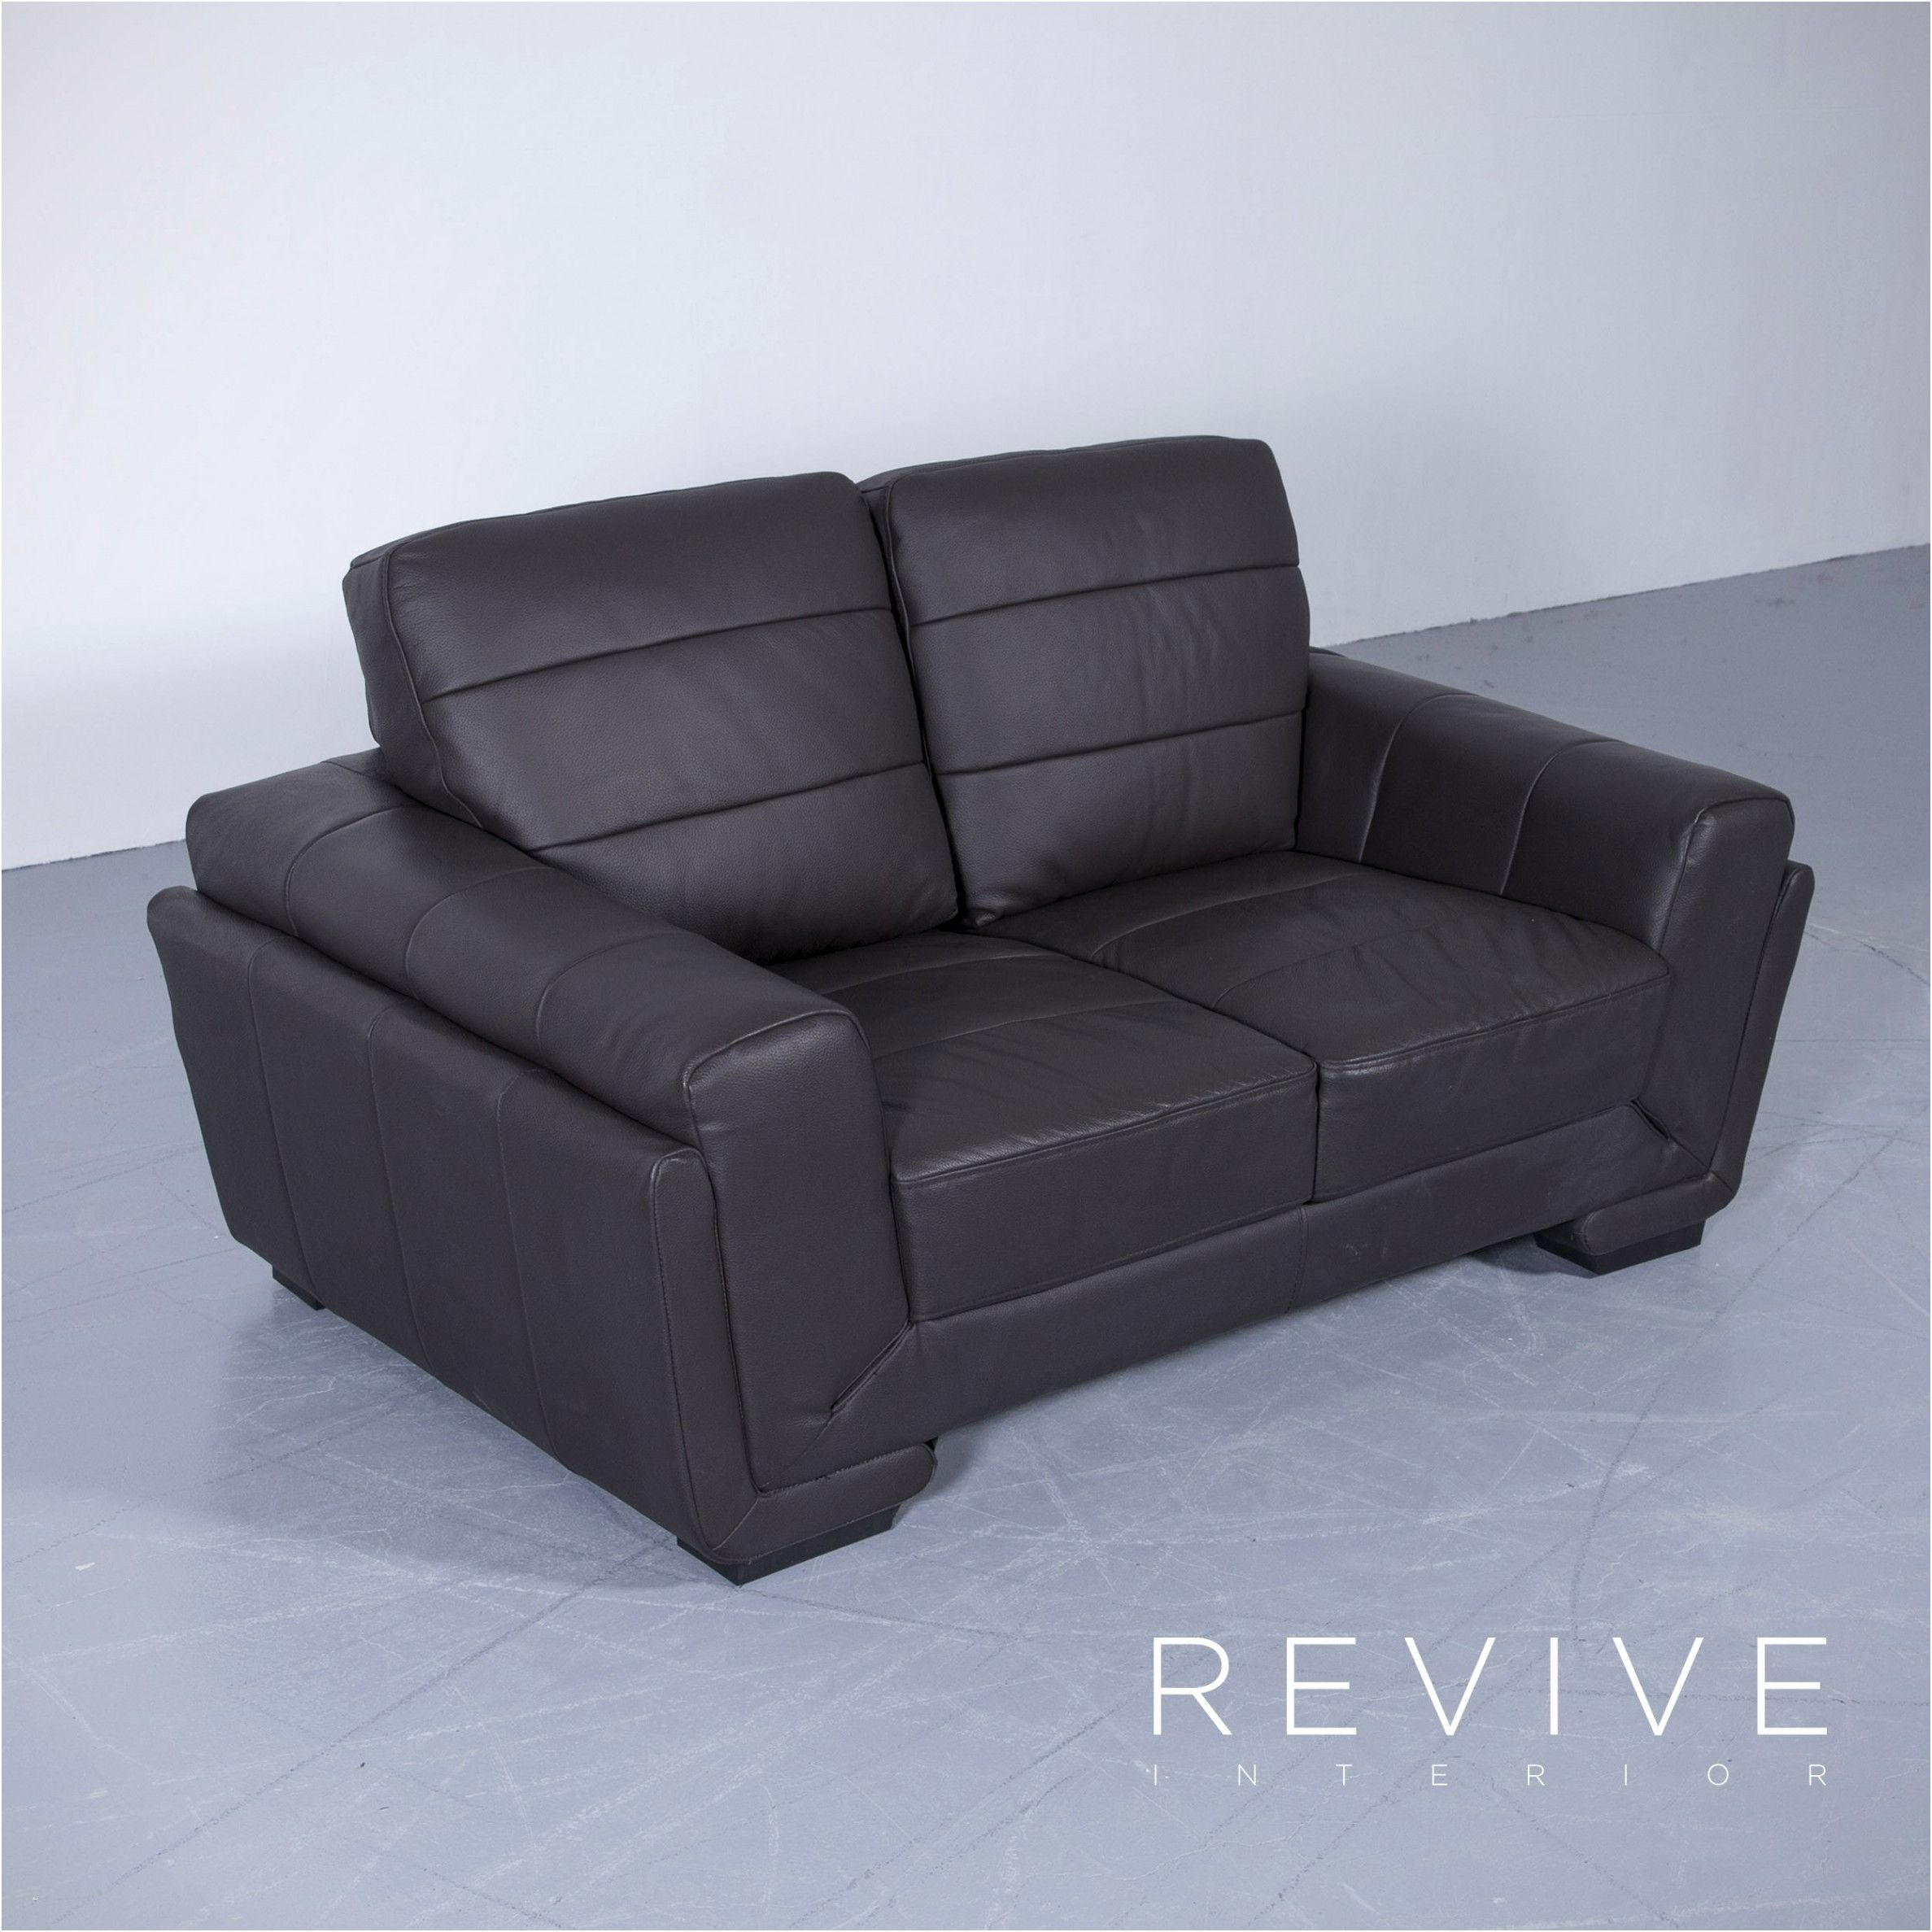 Dreisitzer Sofa Mit Schlaffunktion Clever Big Sofa Mit Led Couch Möbel Sofa Big Sofas Sectional